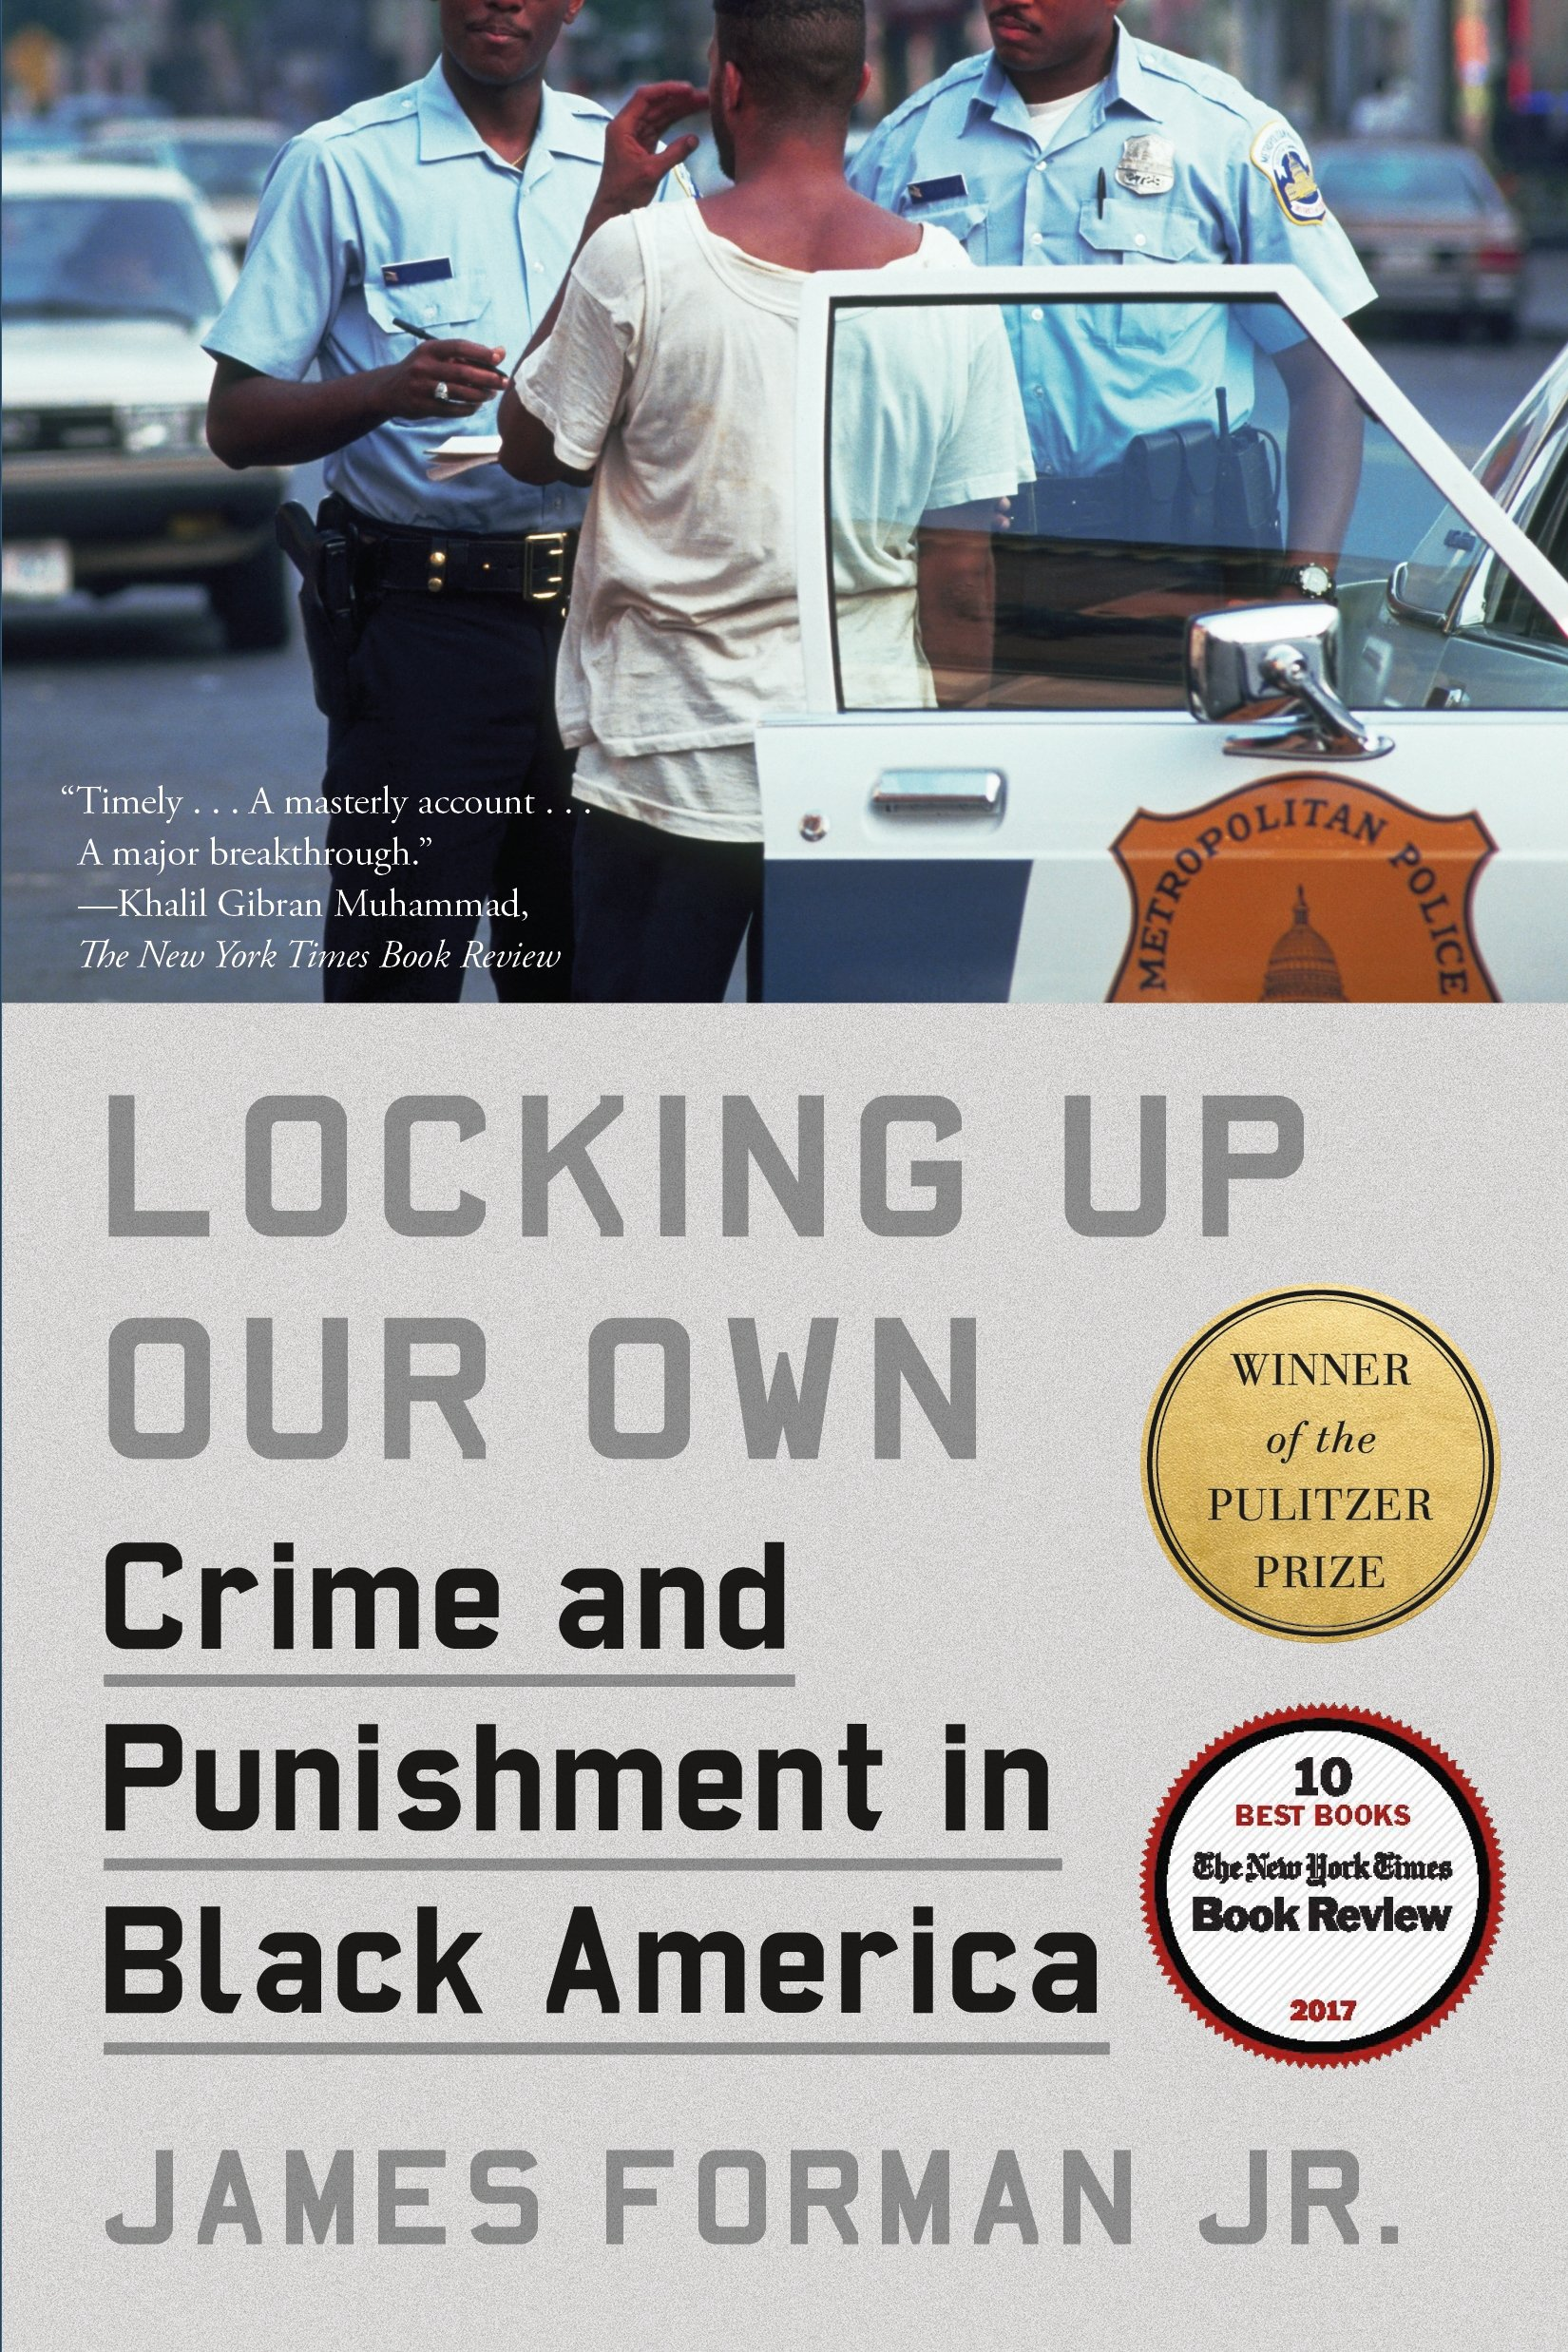 Locking Up Our Own: Crime and Punishment in Black America